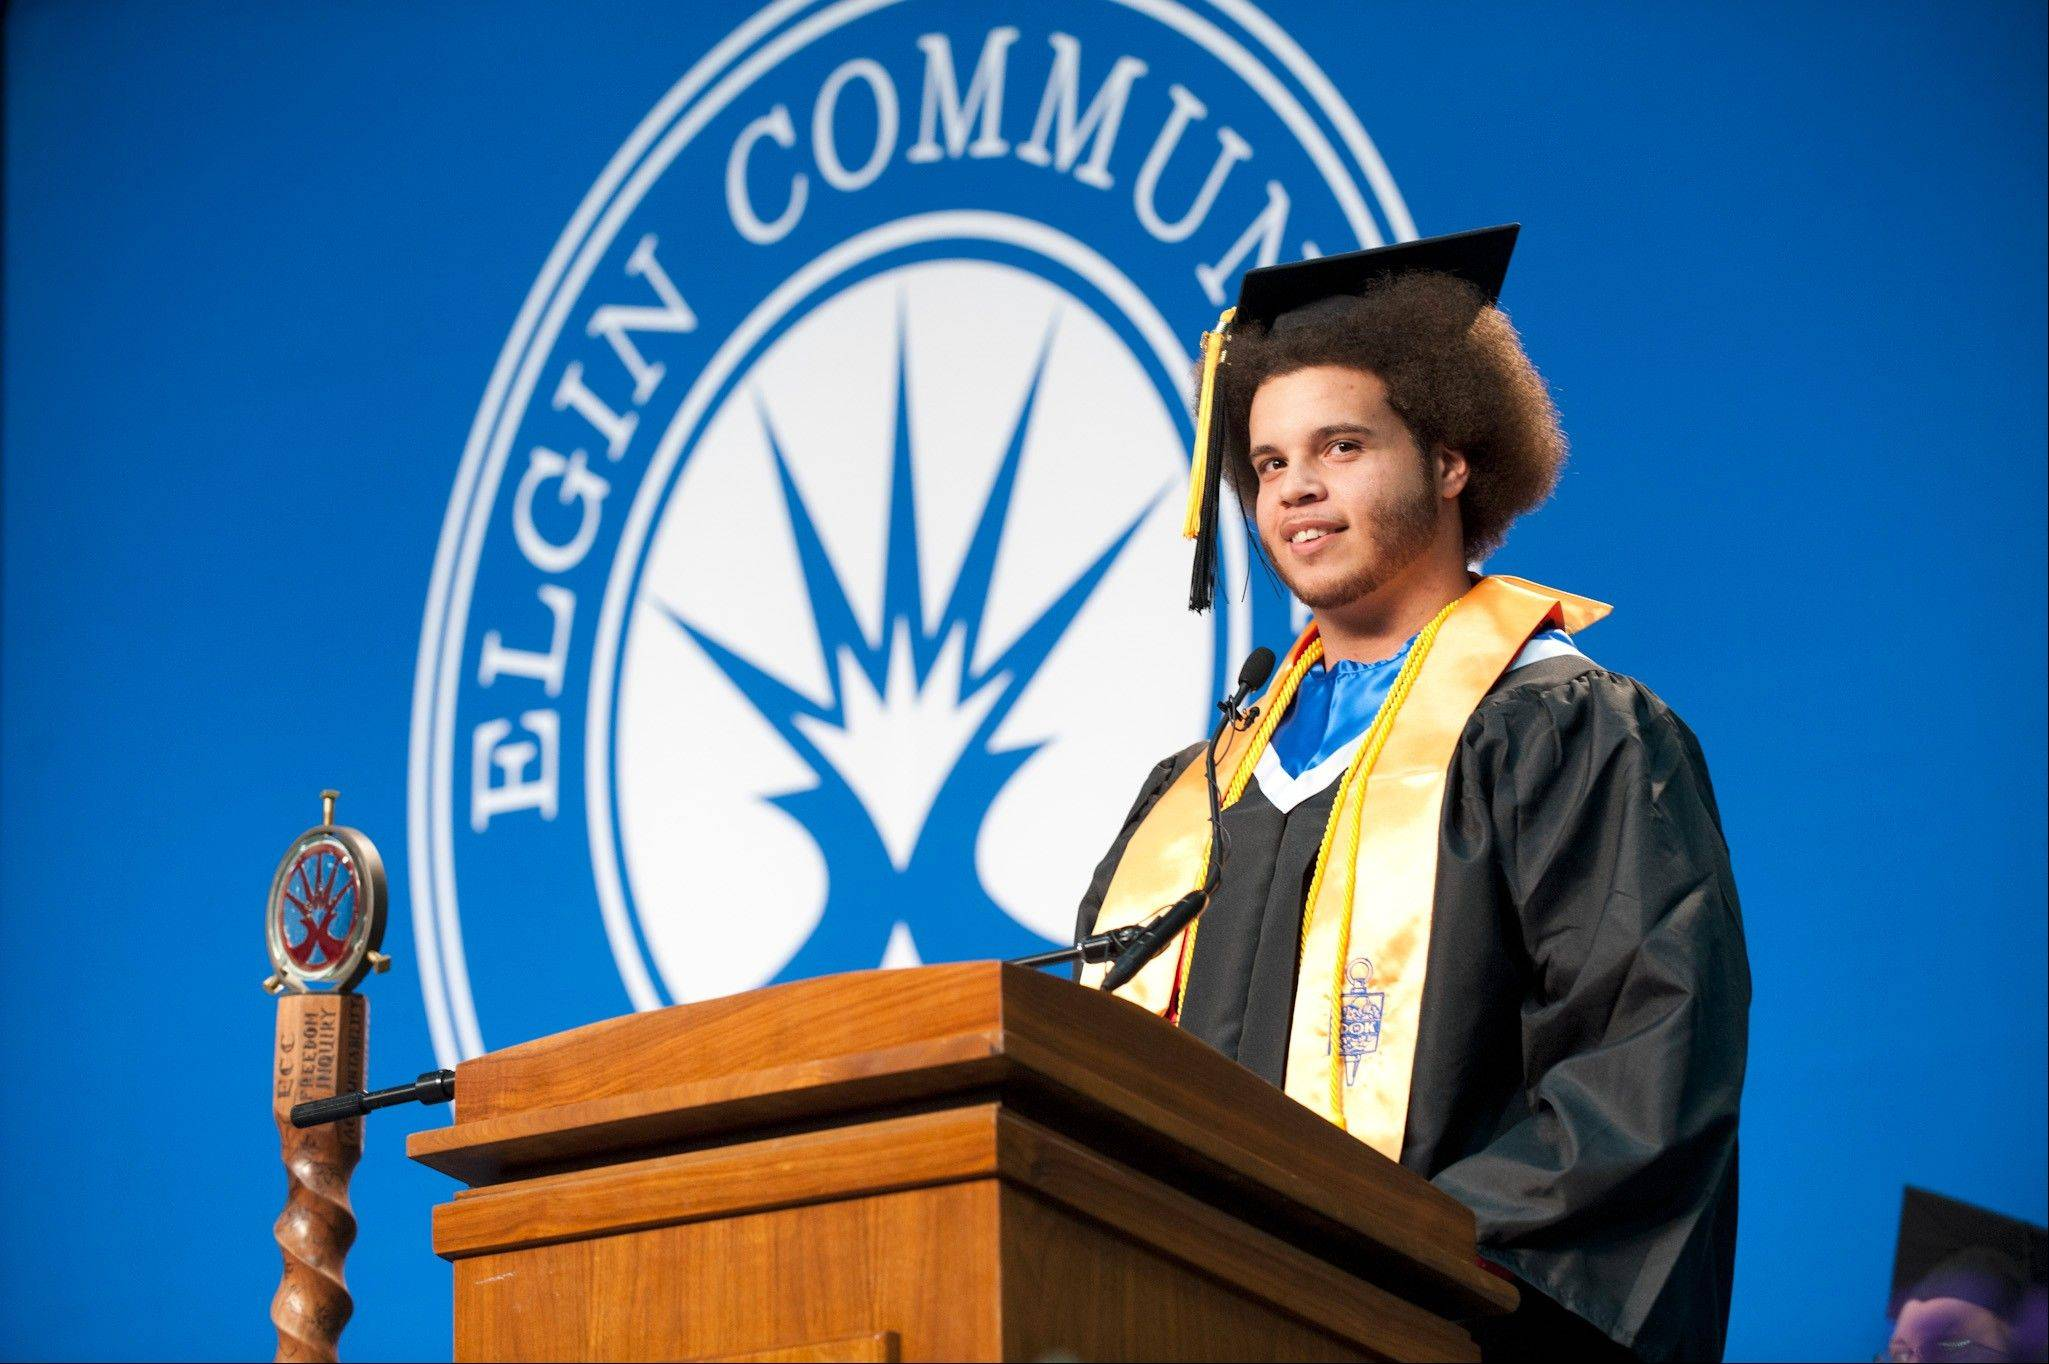 Bryan Lantz was the student speaker at Elgin Community College's December commencement ceremony. Lantz graduated from Larkin High School in 2010 and plans to continue his education at Judson University next fall.